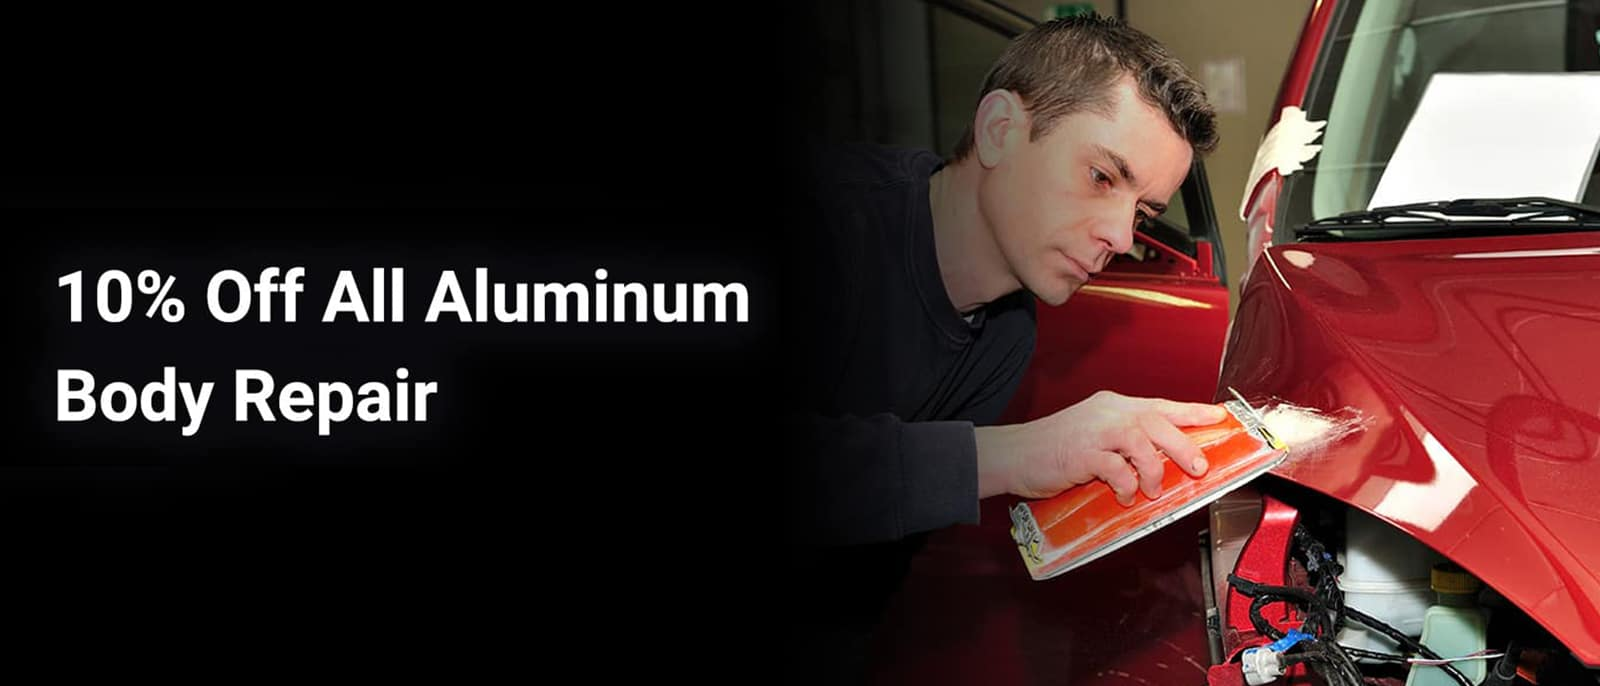 10%_Off_Aluminum_Repair